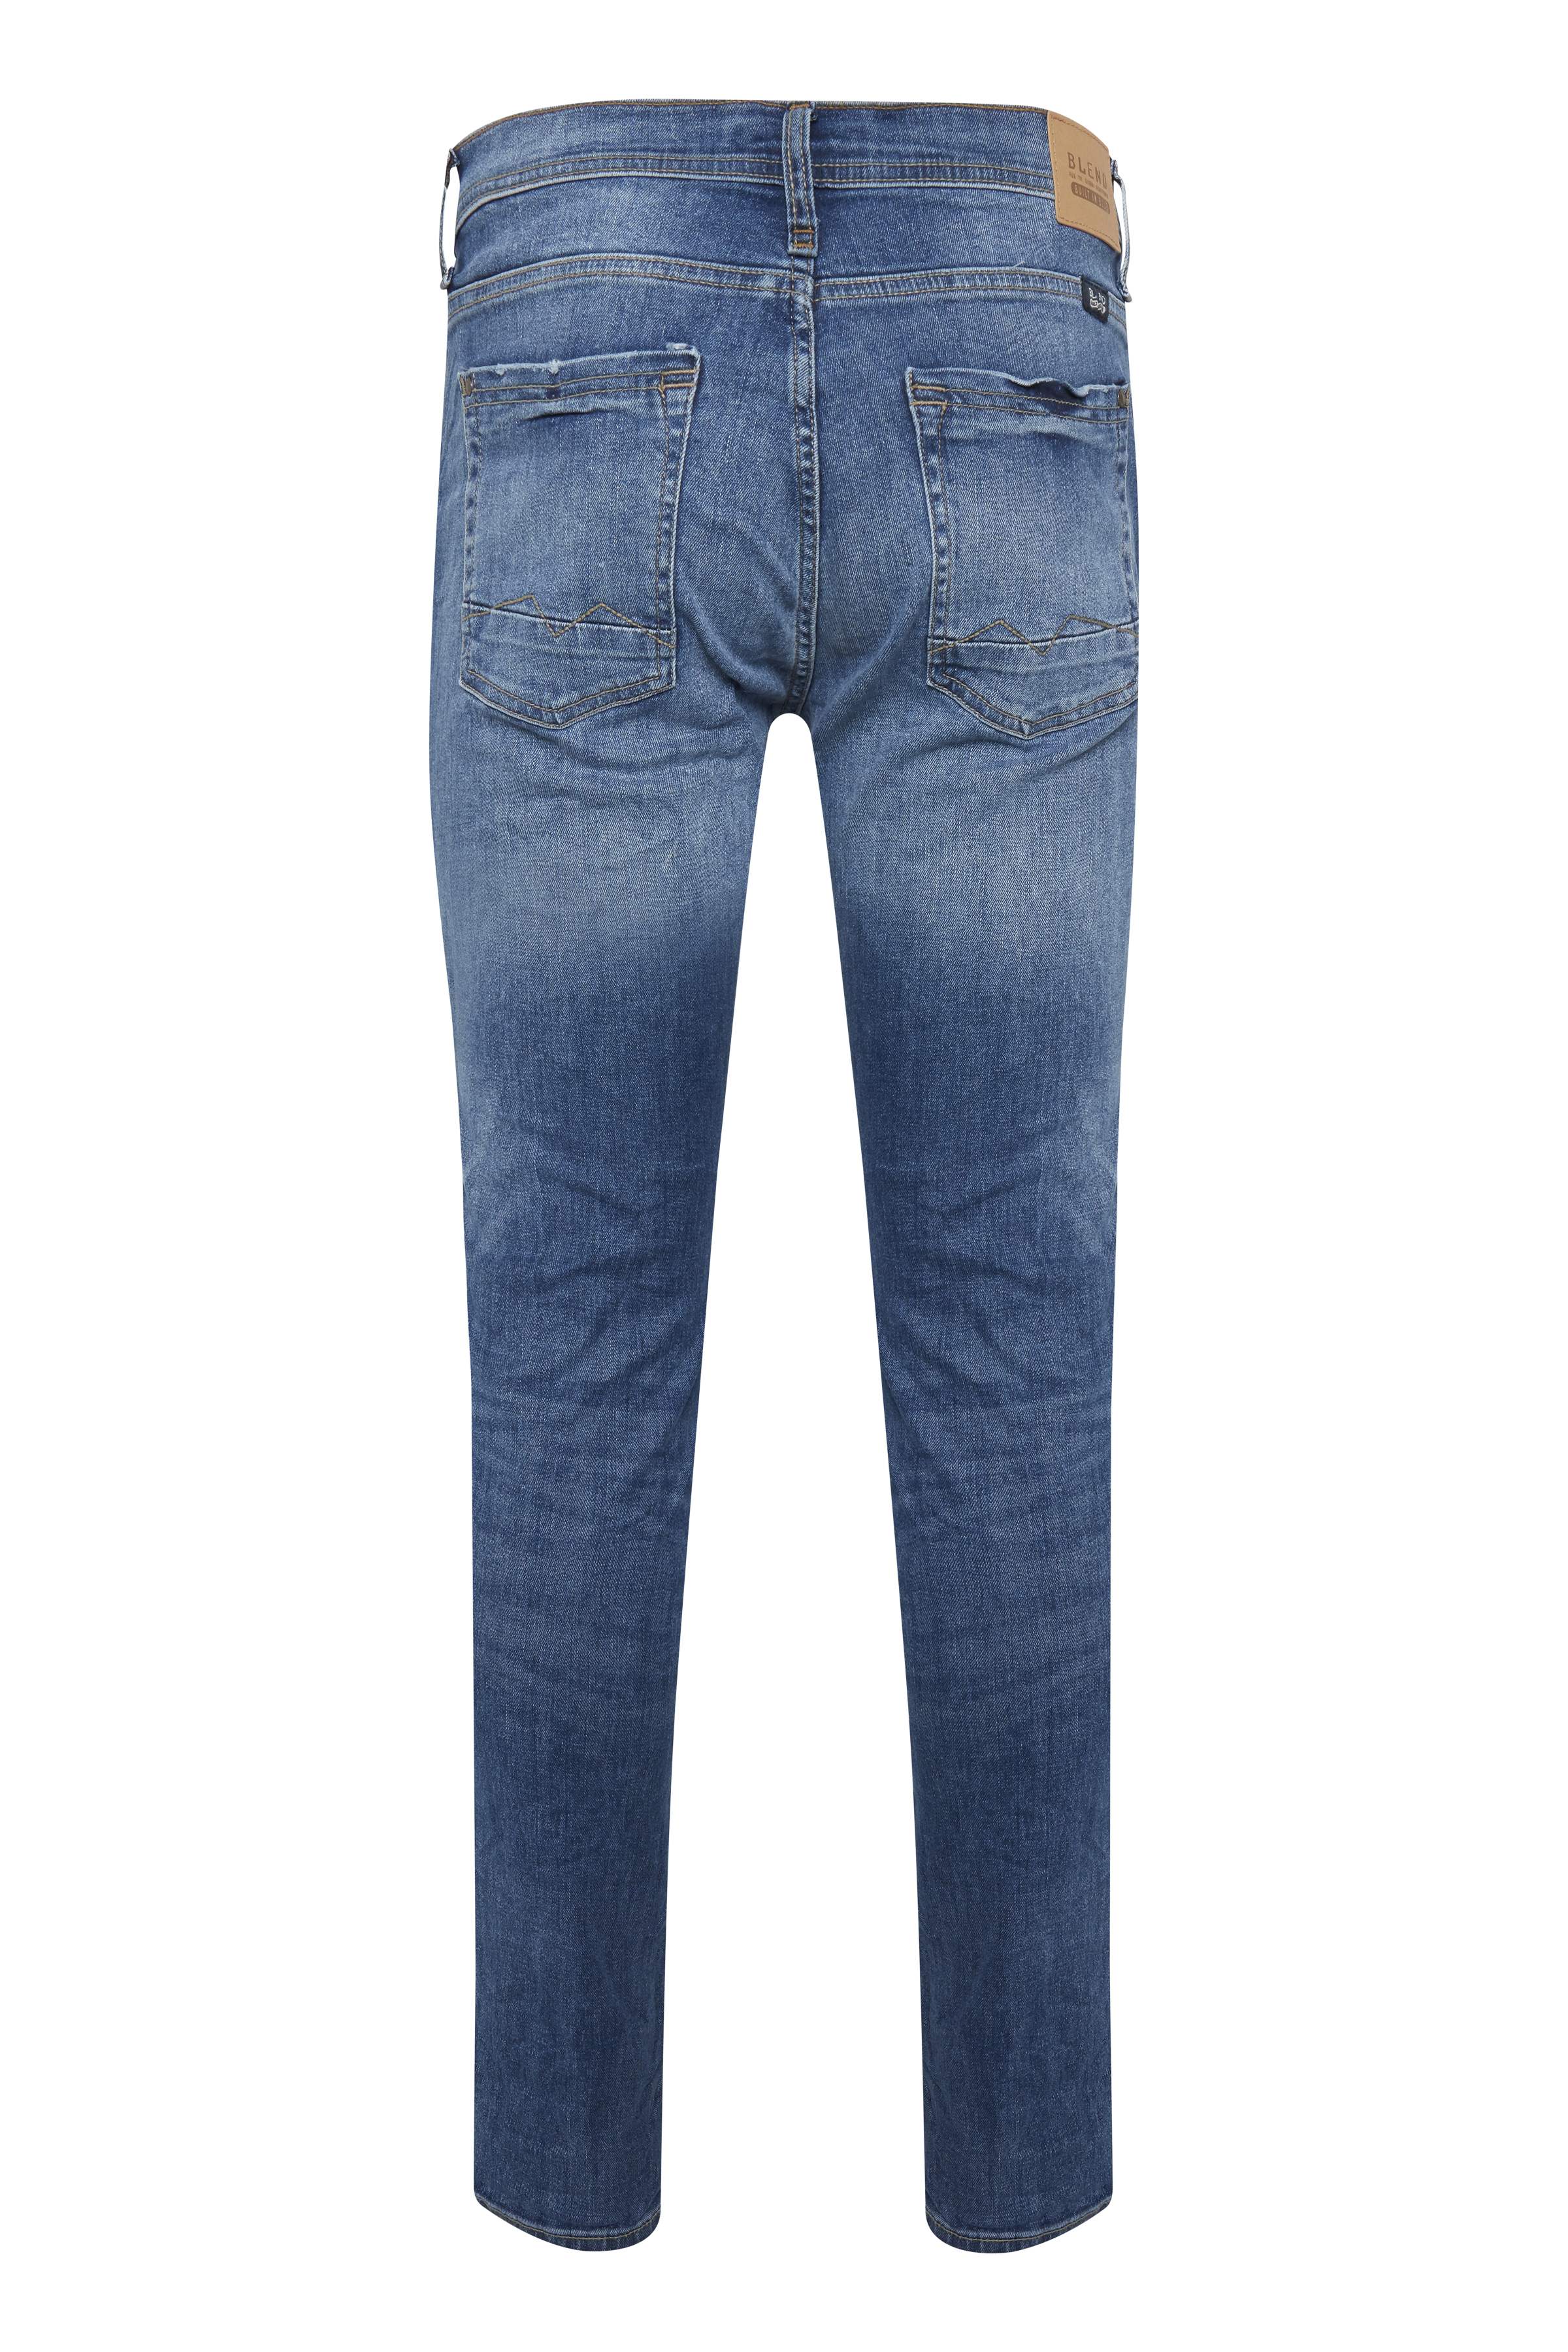 Denim light blue Jet jeans fra Blend He – Køb Denim light blue Jet jeans fra str. 25-40 her